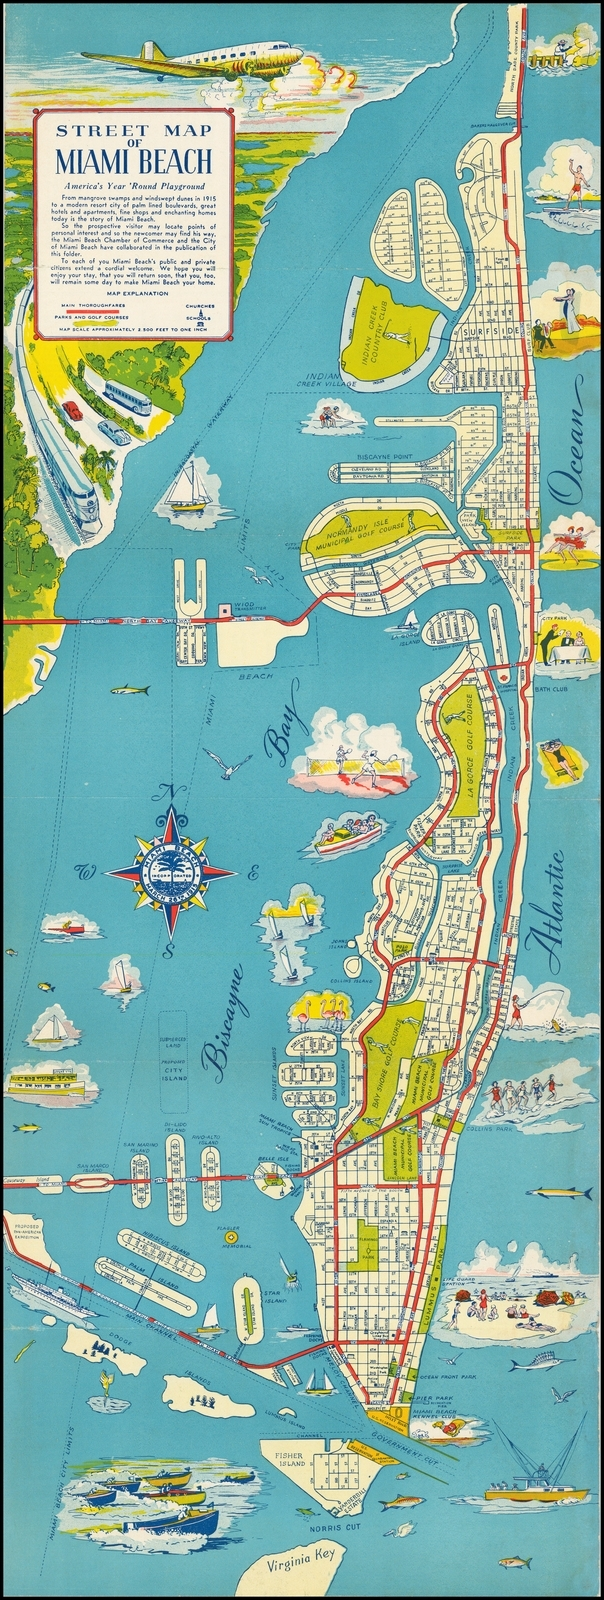 Street Map Of Miami Beach America's Year Round Playground inside Miami Beach Golf Club Course Map